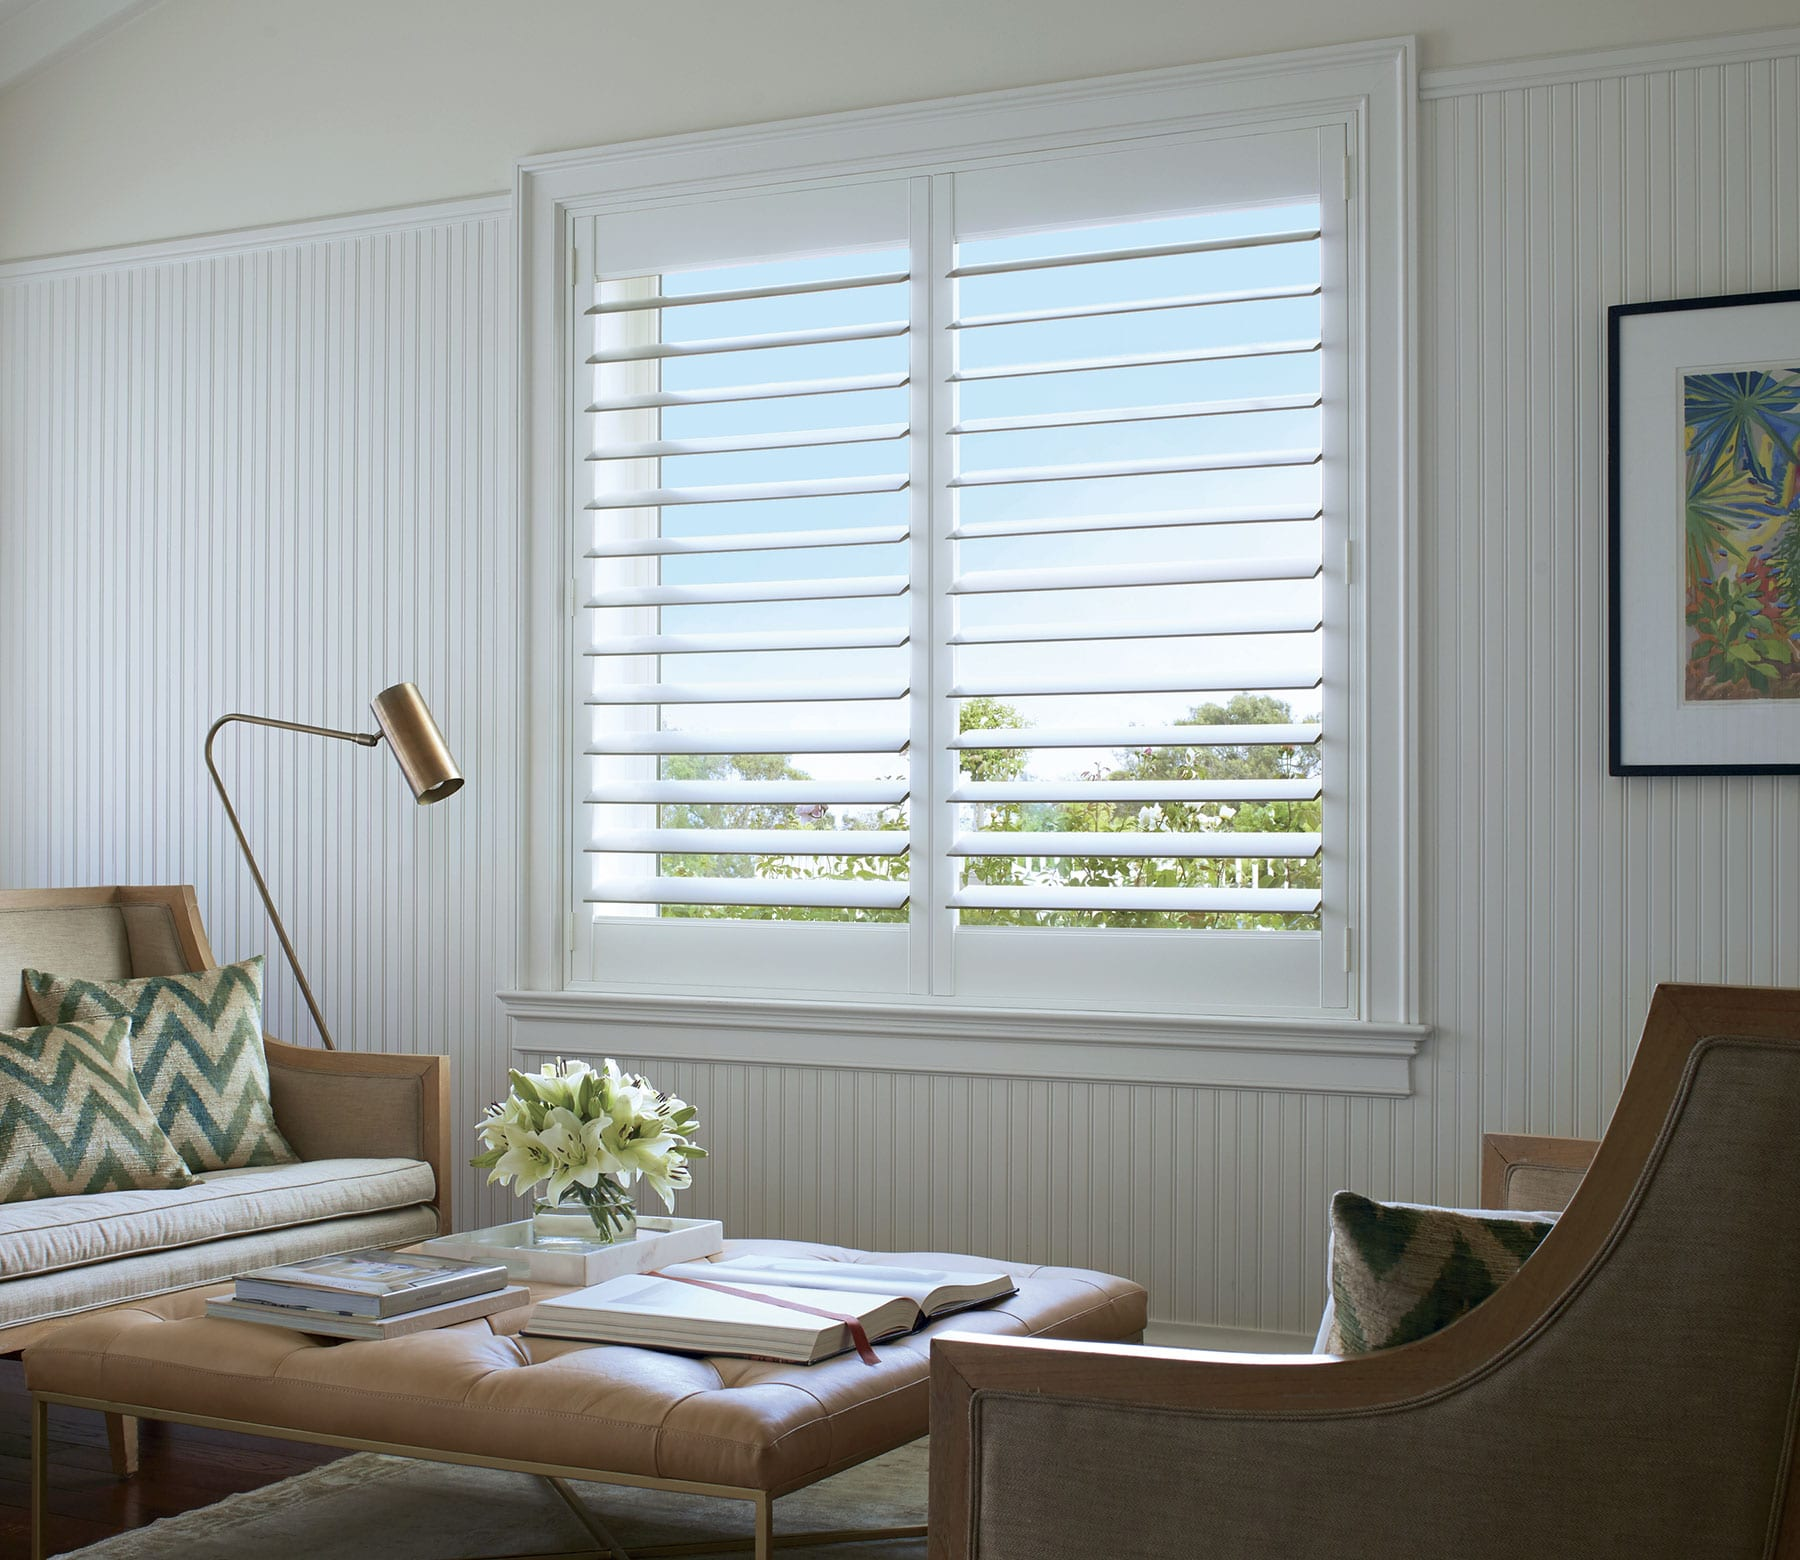 newstyle hybrid shutters in living room in houston texas